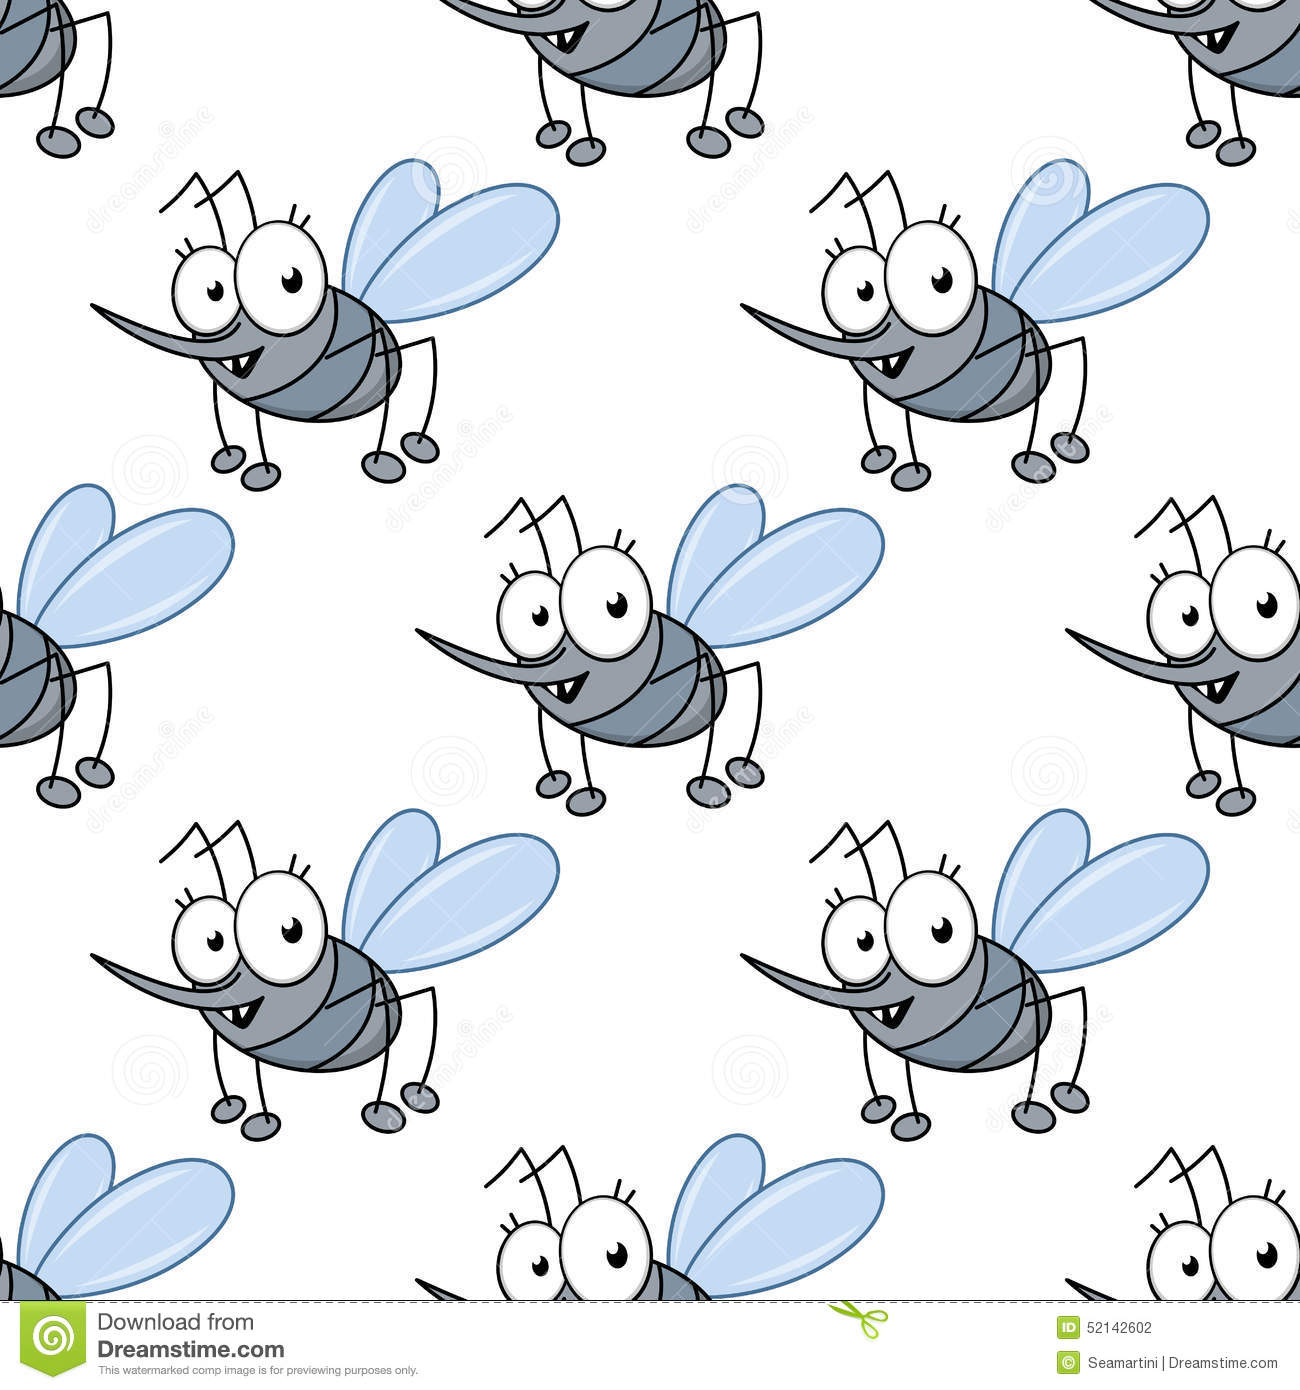 Funny cartoon mosquitos seamless pattern